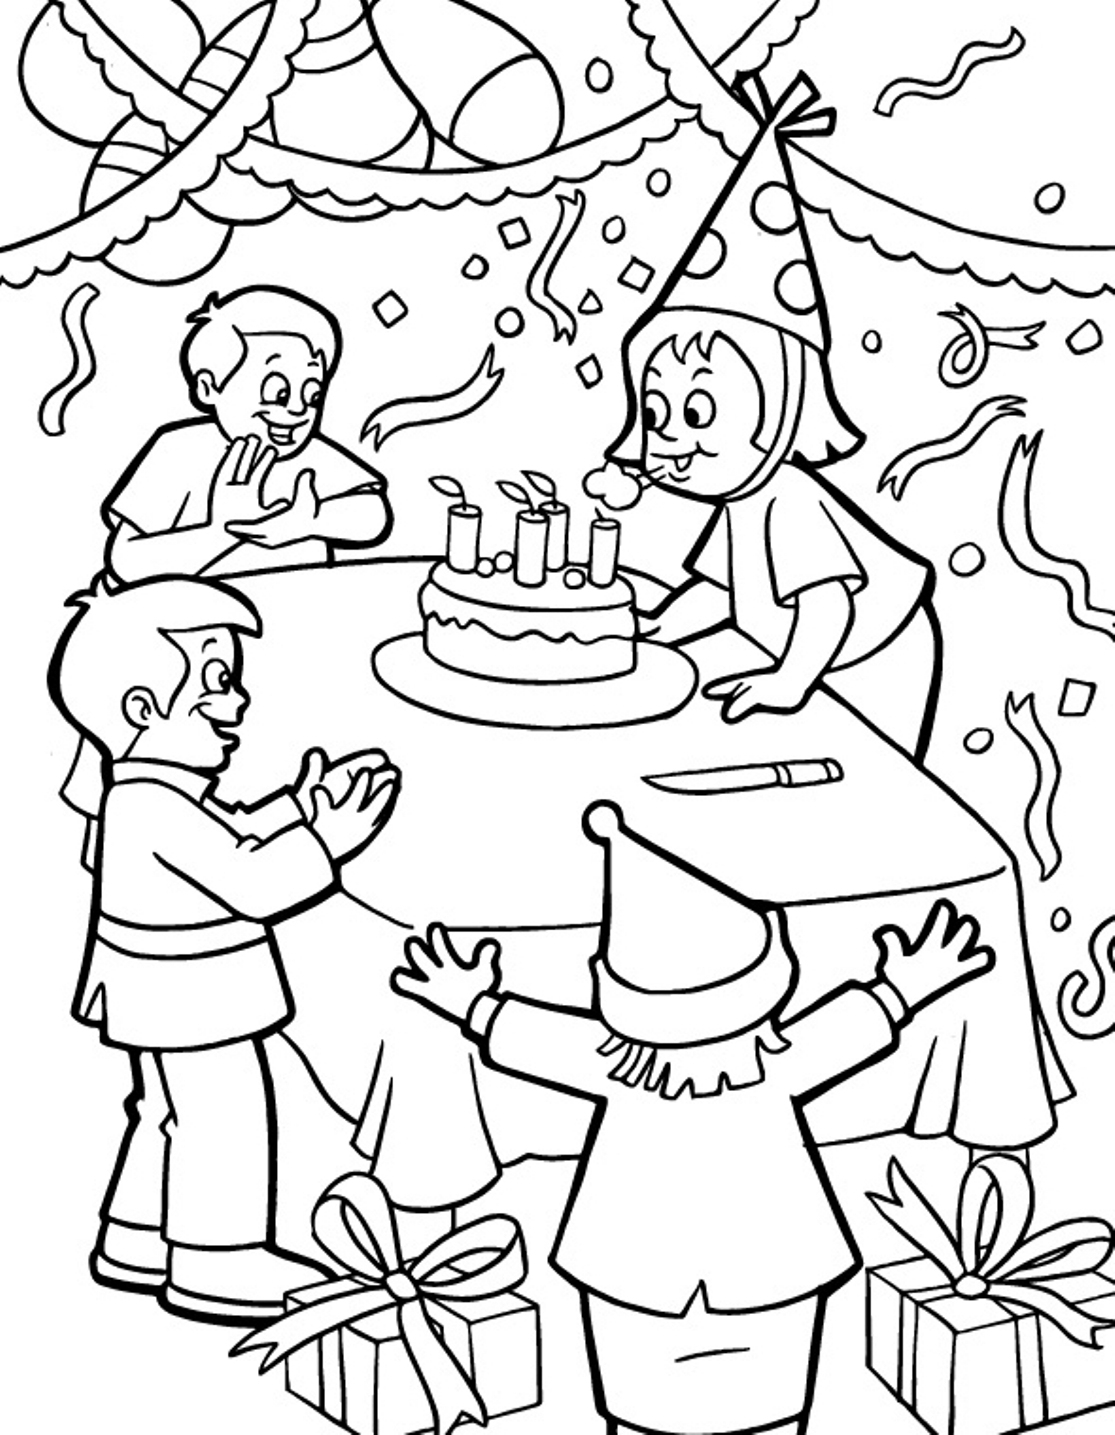 picture of birthday party scene ; birthday-party-scene-for-drawing-emejing-coloring-birthday-party-pictures-best-printable-coloring